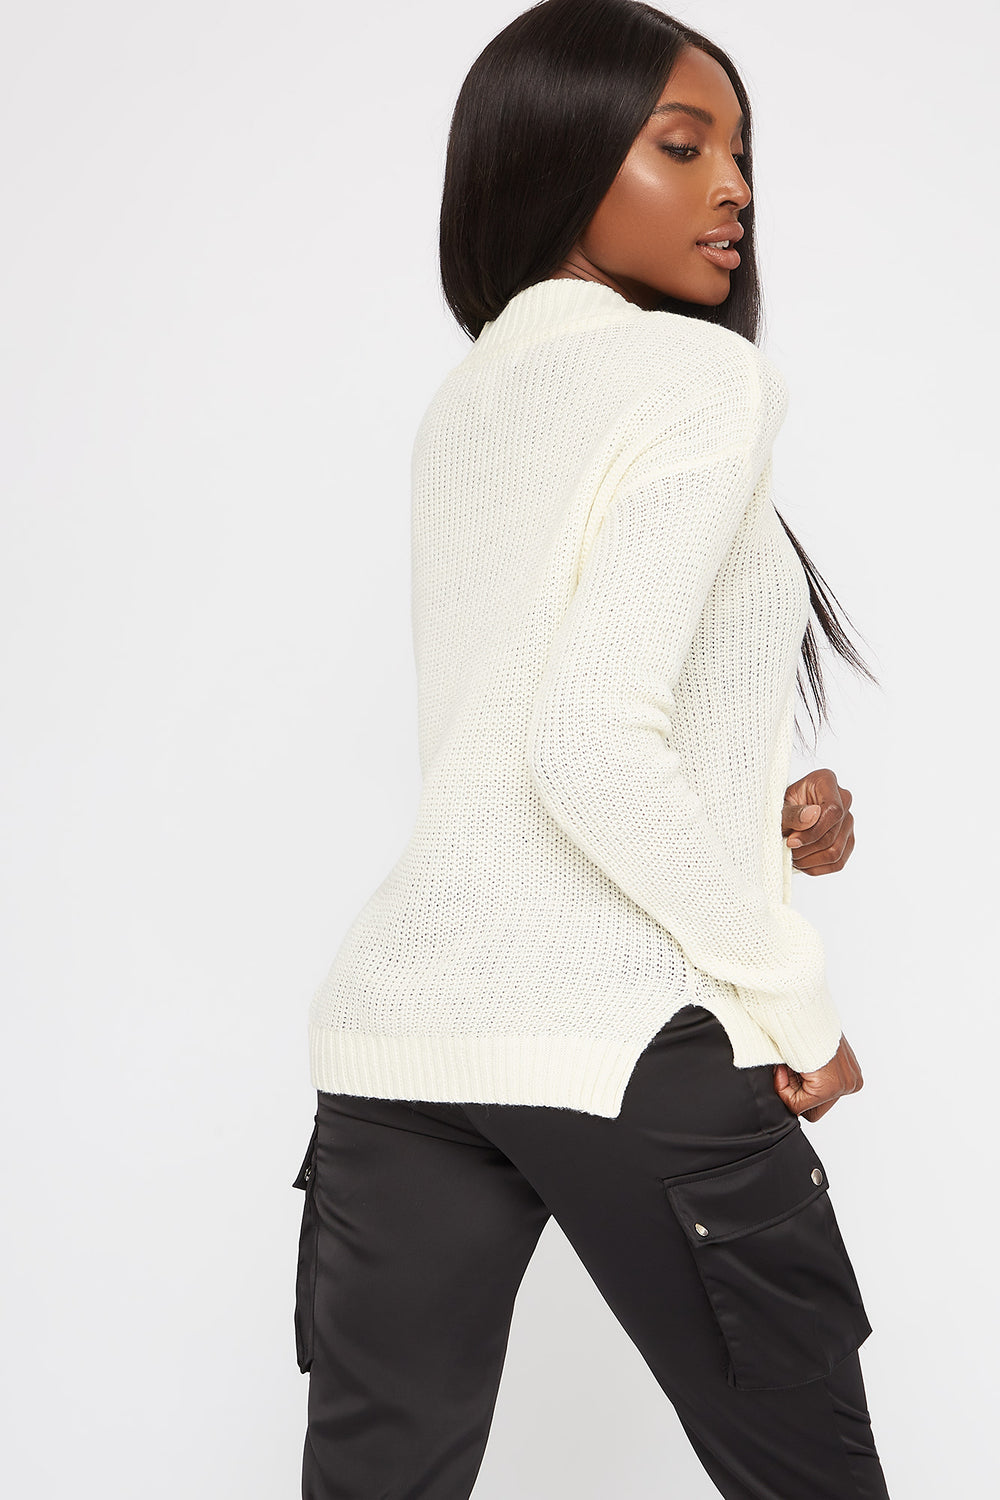 Boxy V-Neck Side Slit Cropped Sweater White